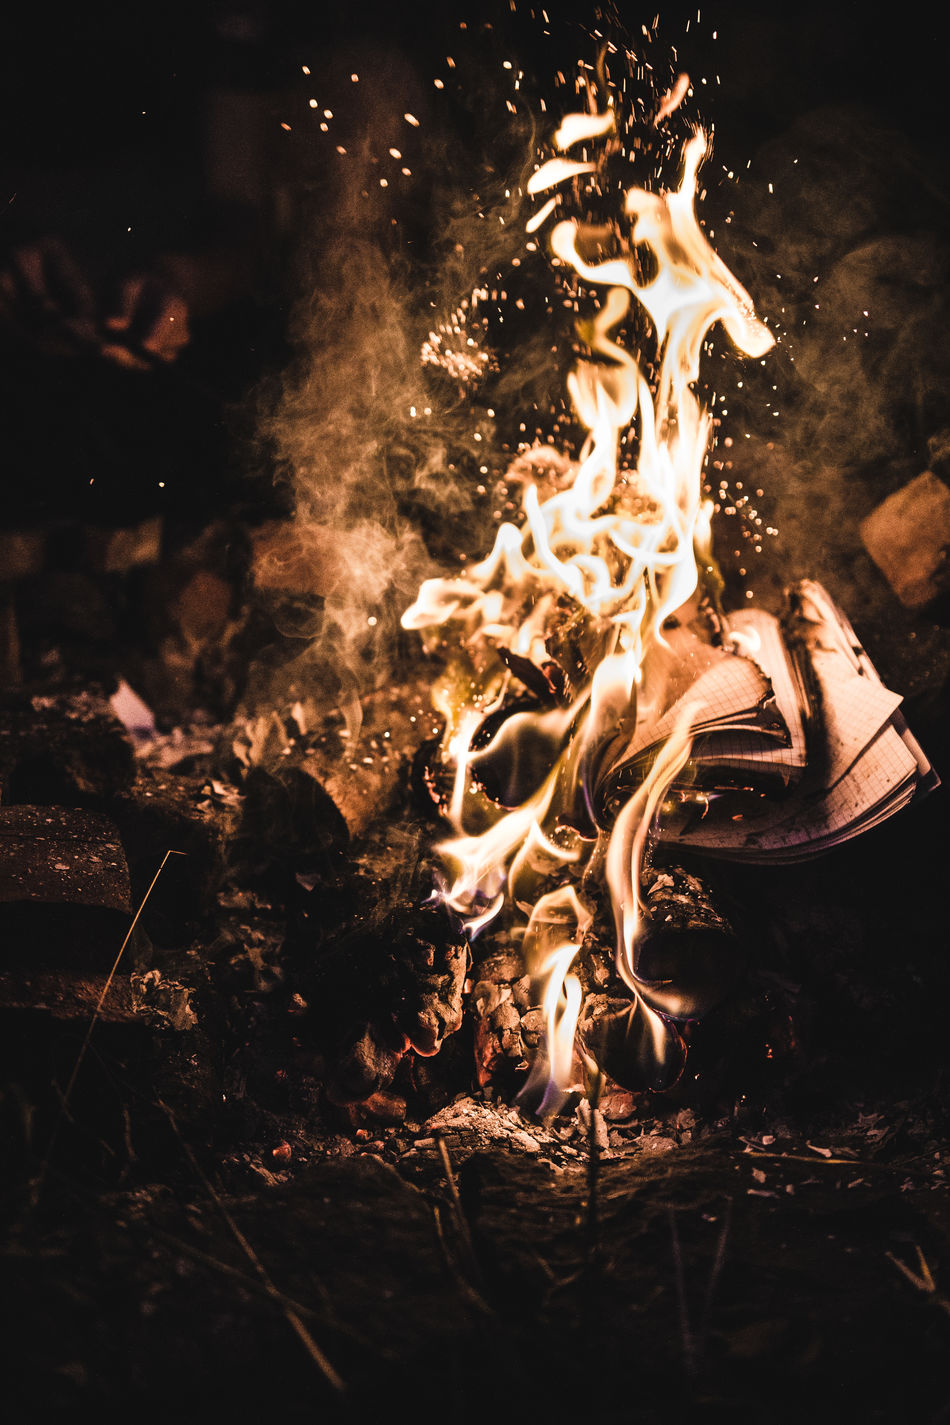 Bonfire Bright Burning Campfire Close-up Fire - Natural Phenomenon Firewood Flame Glowing Heat Heat - Temperature Night Outdoors Vibrant Color Wood - Material